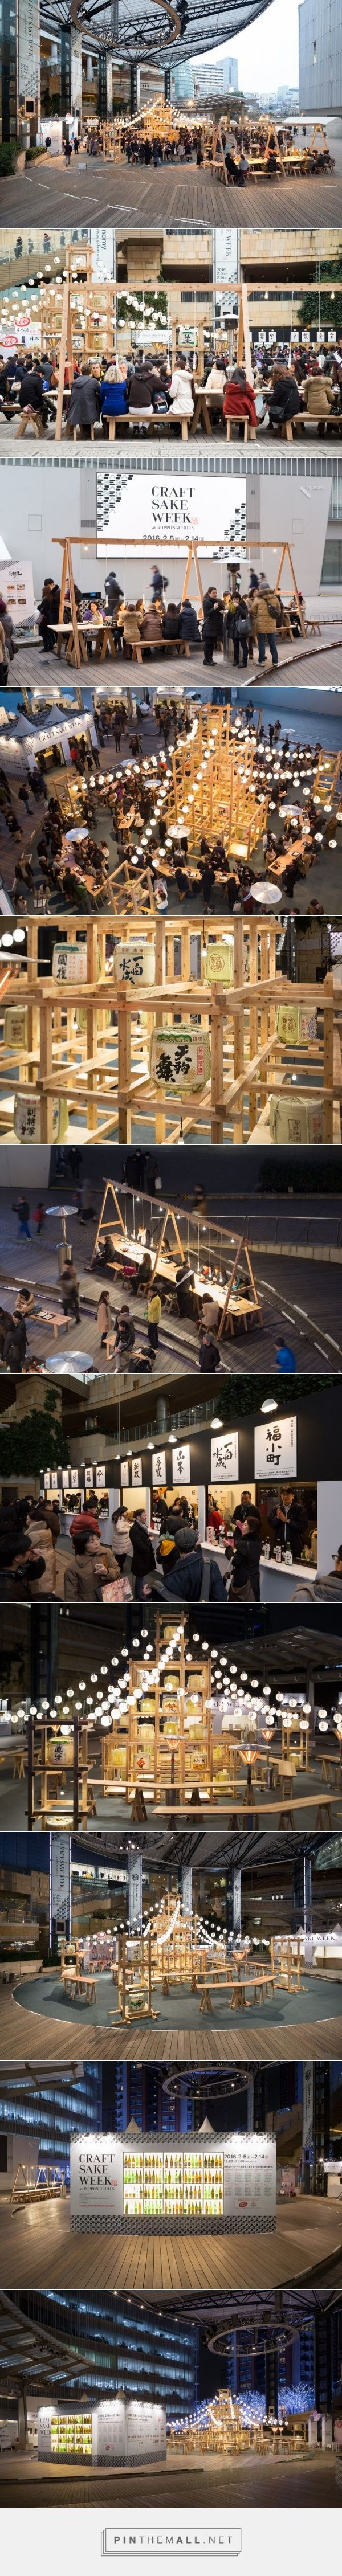 CRAFT SAKE WEEK 六本木ヒルズ屋台村 «  TORAFU ARCHITECTS トラフ建築設計事務所 - created via https://pinthemall.net